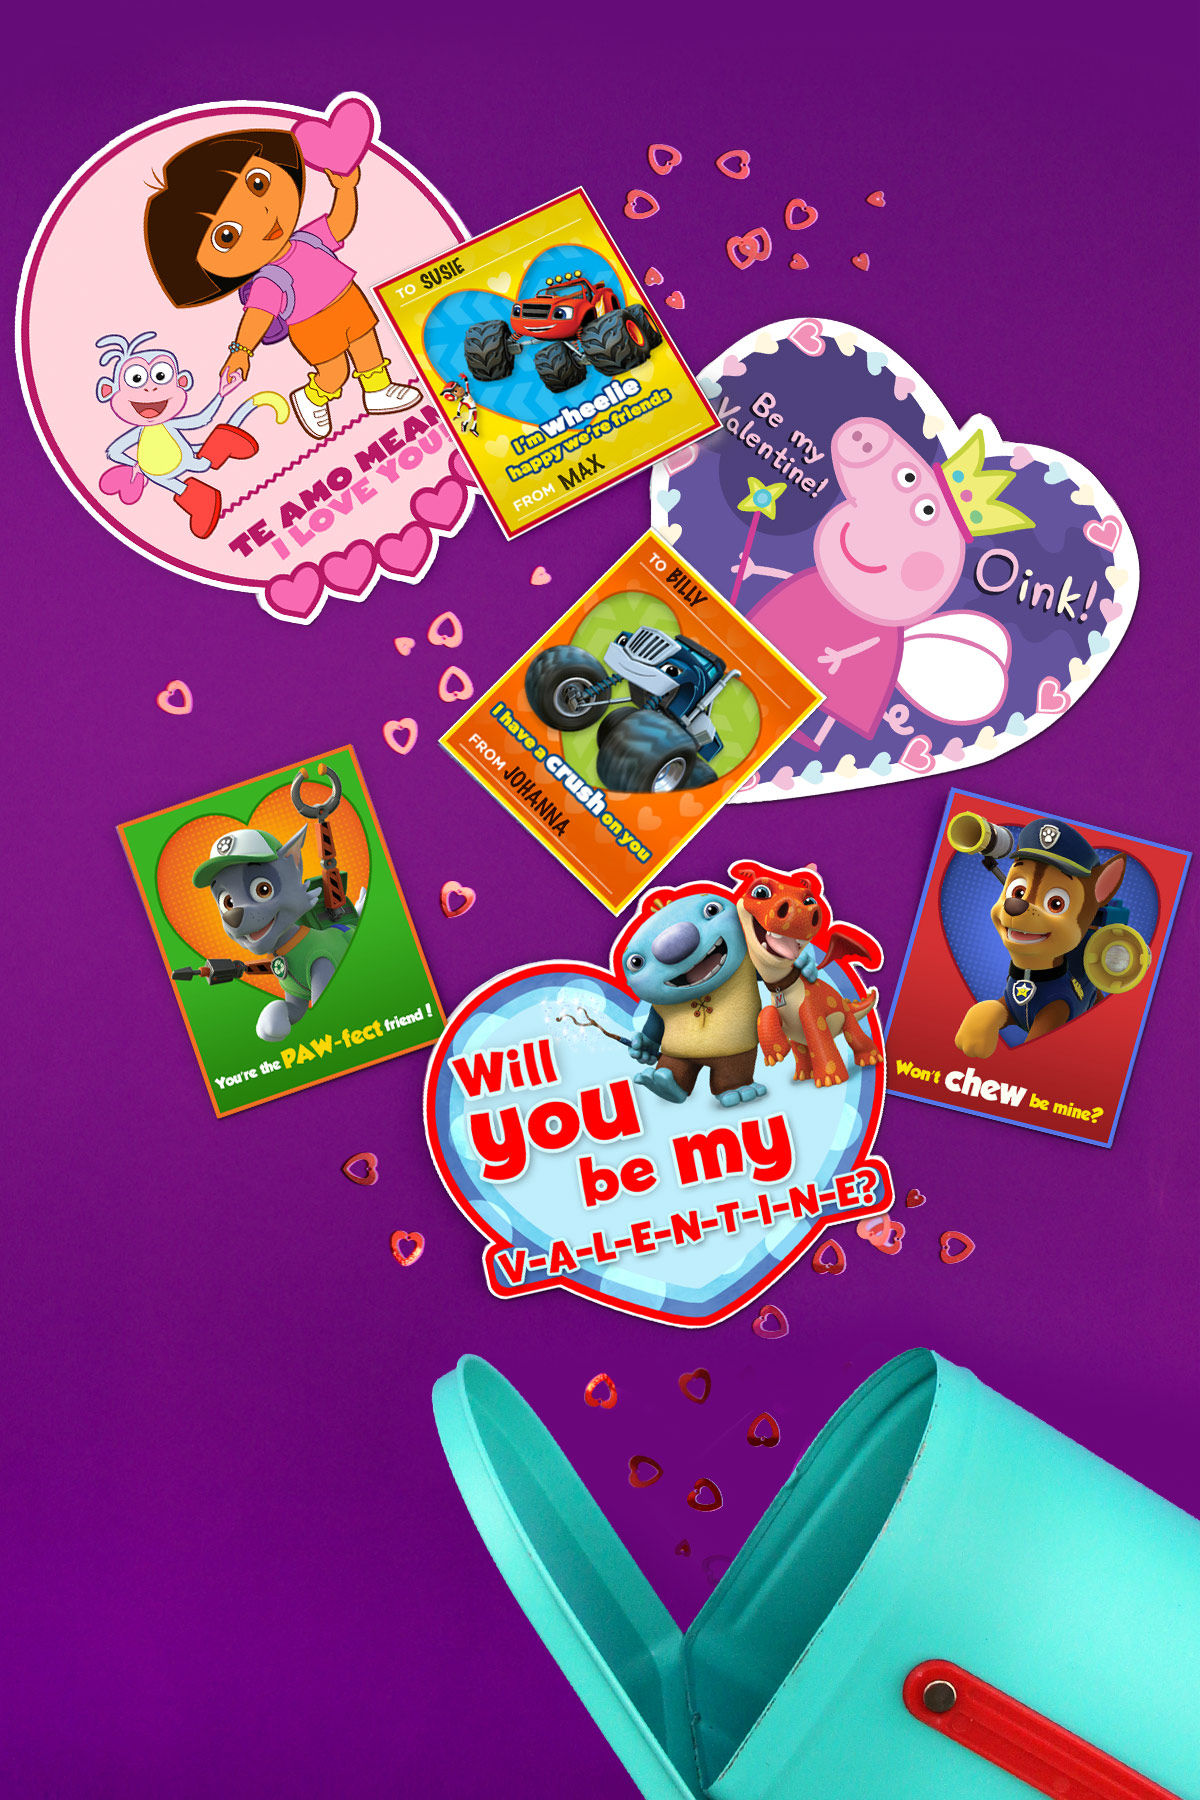 8 Cute Diy Nick Jr Valentine S Day Cards